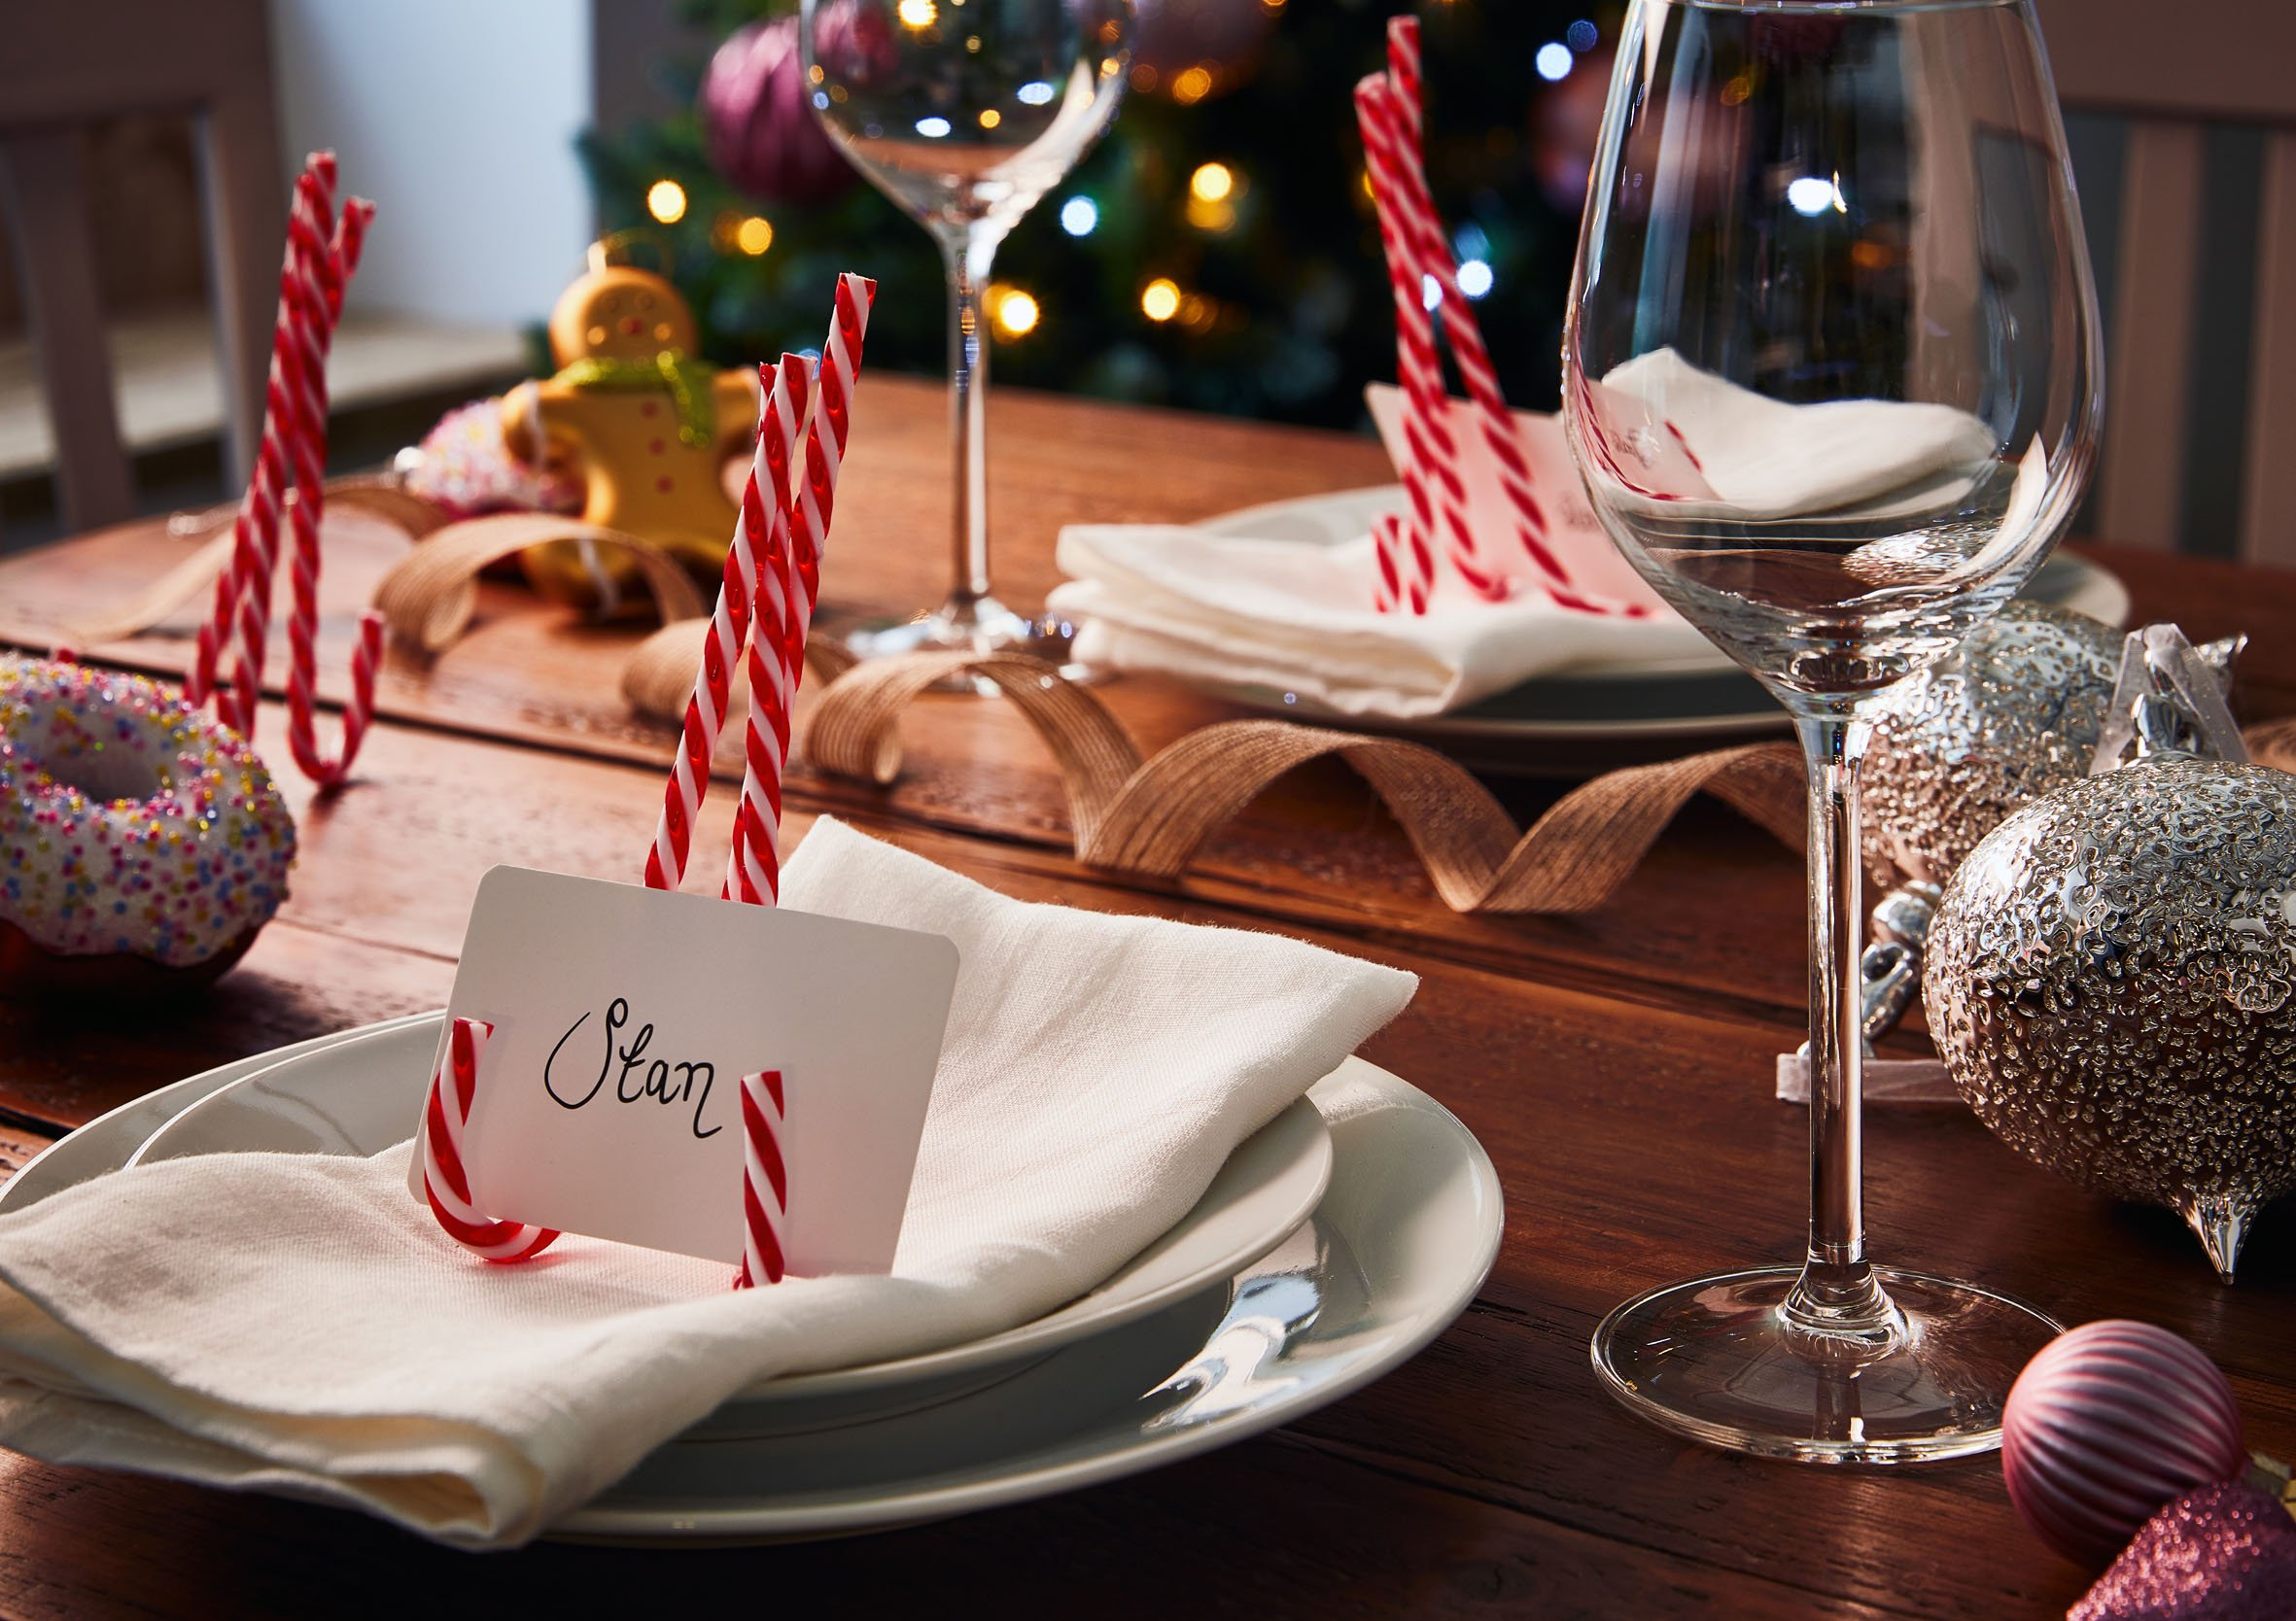 10 Ideas to Prepare Your Christmas Table for a Festive Feast